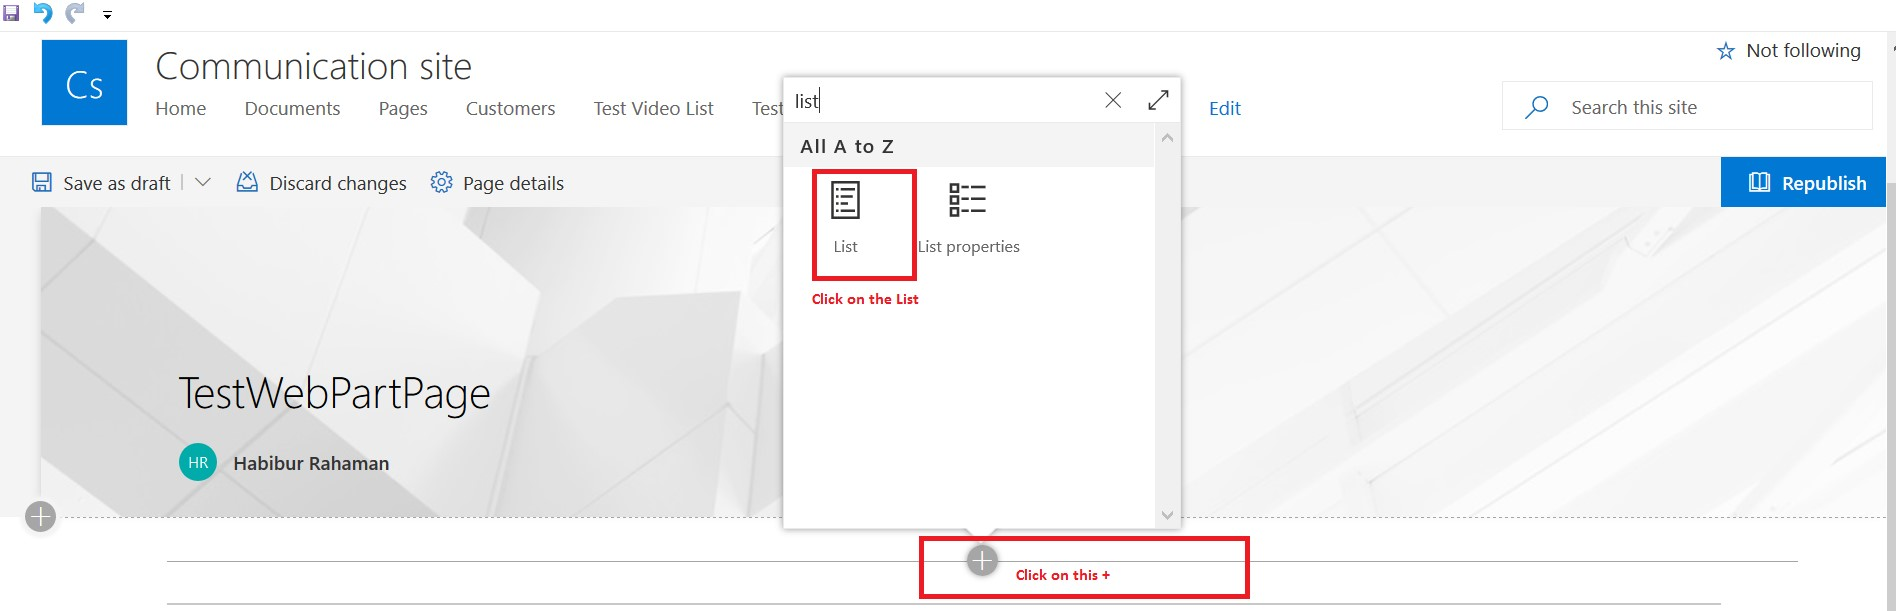 Connect list view web part in SharePoint Online